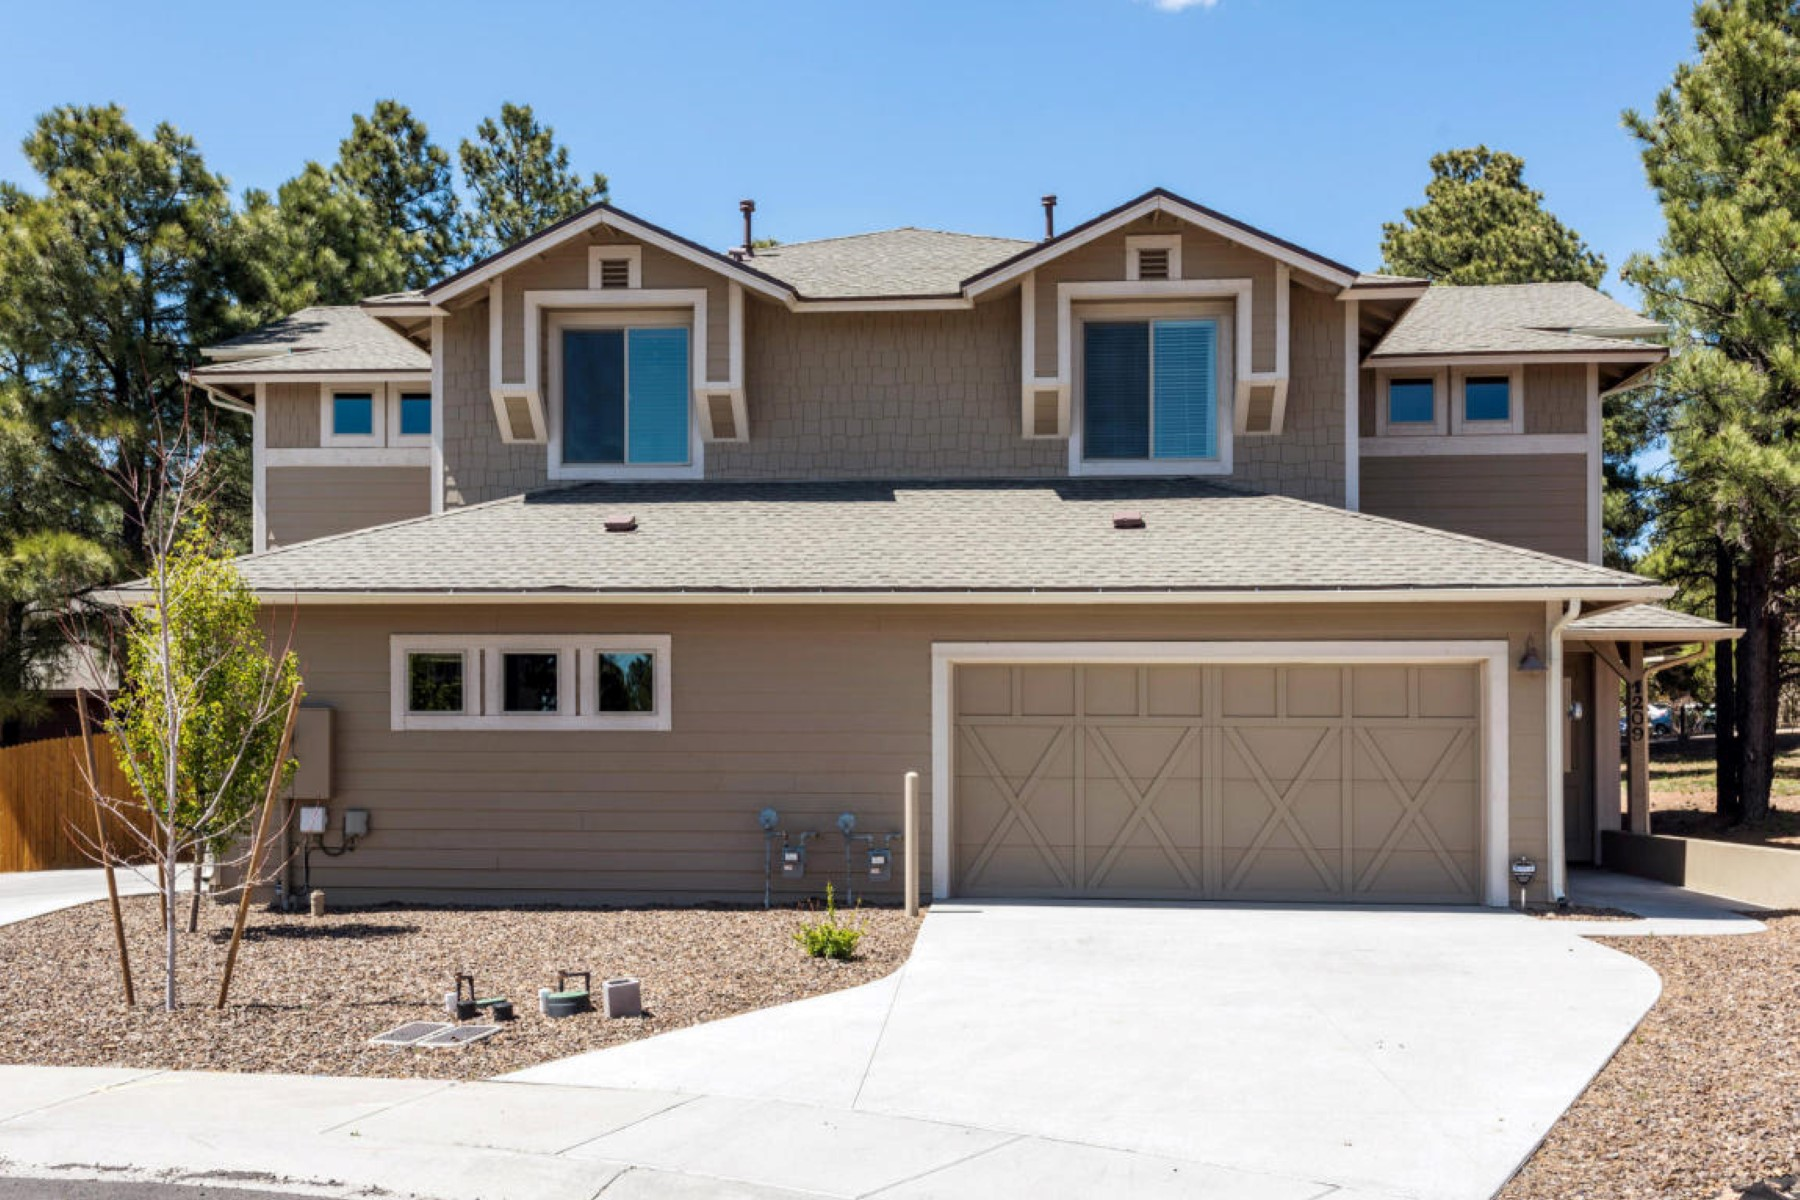 Townhouse for Sale at Quality Construction 1140 N Waterside DR Lot 13 Flagstaff, Arizona, 86004 United States